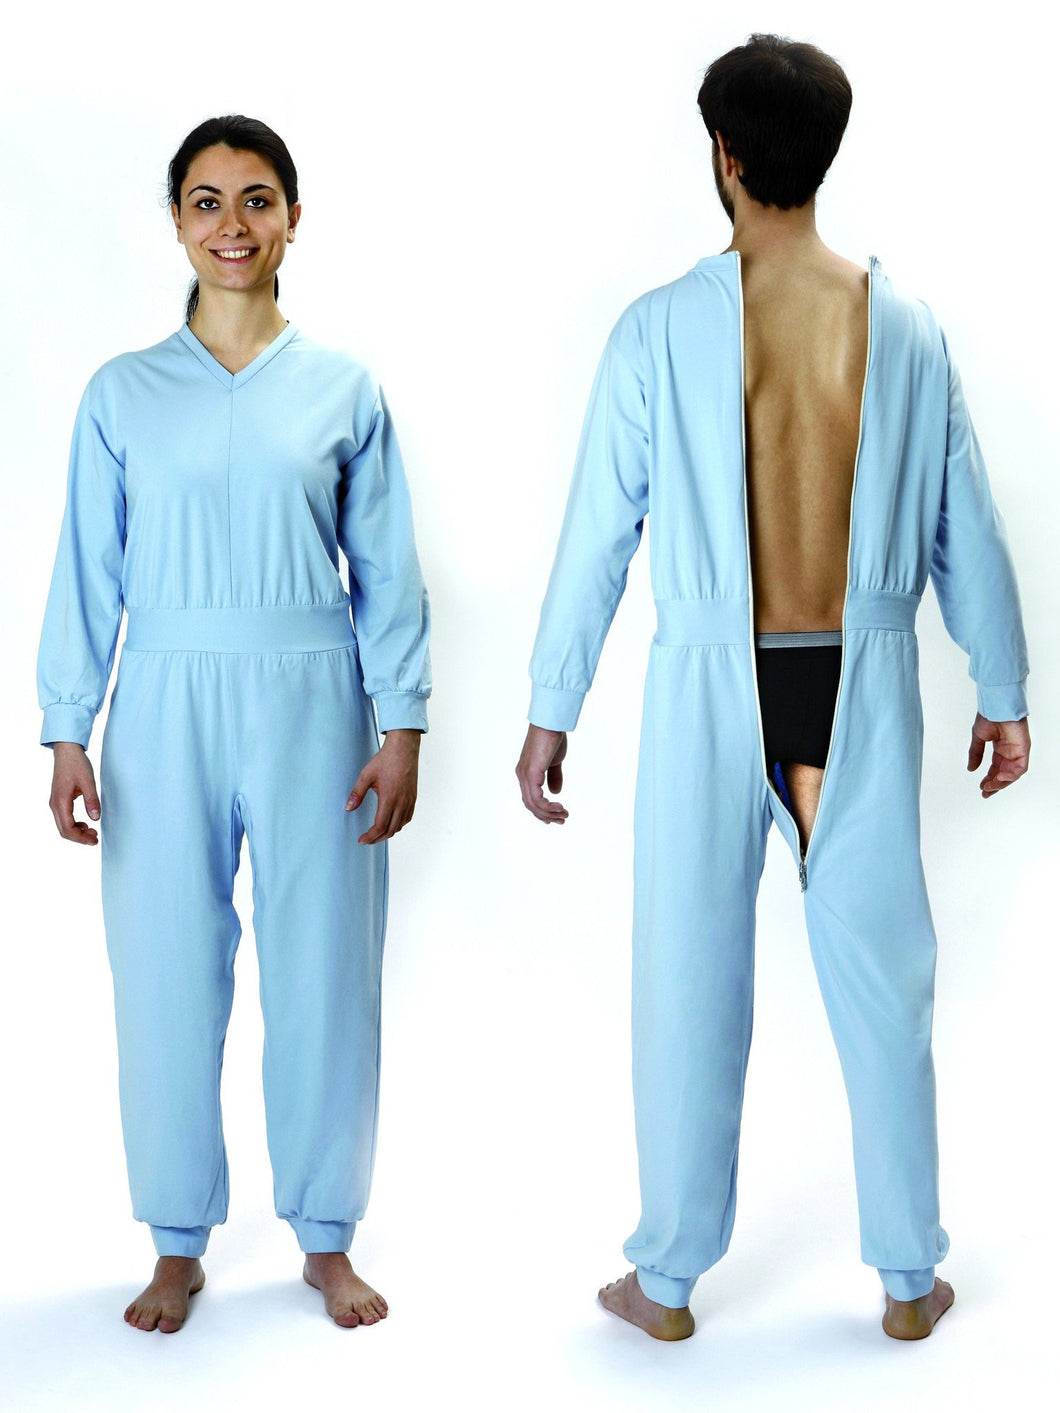 Pijama Sanitario color Azul Claro Art.7888